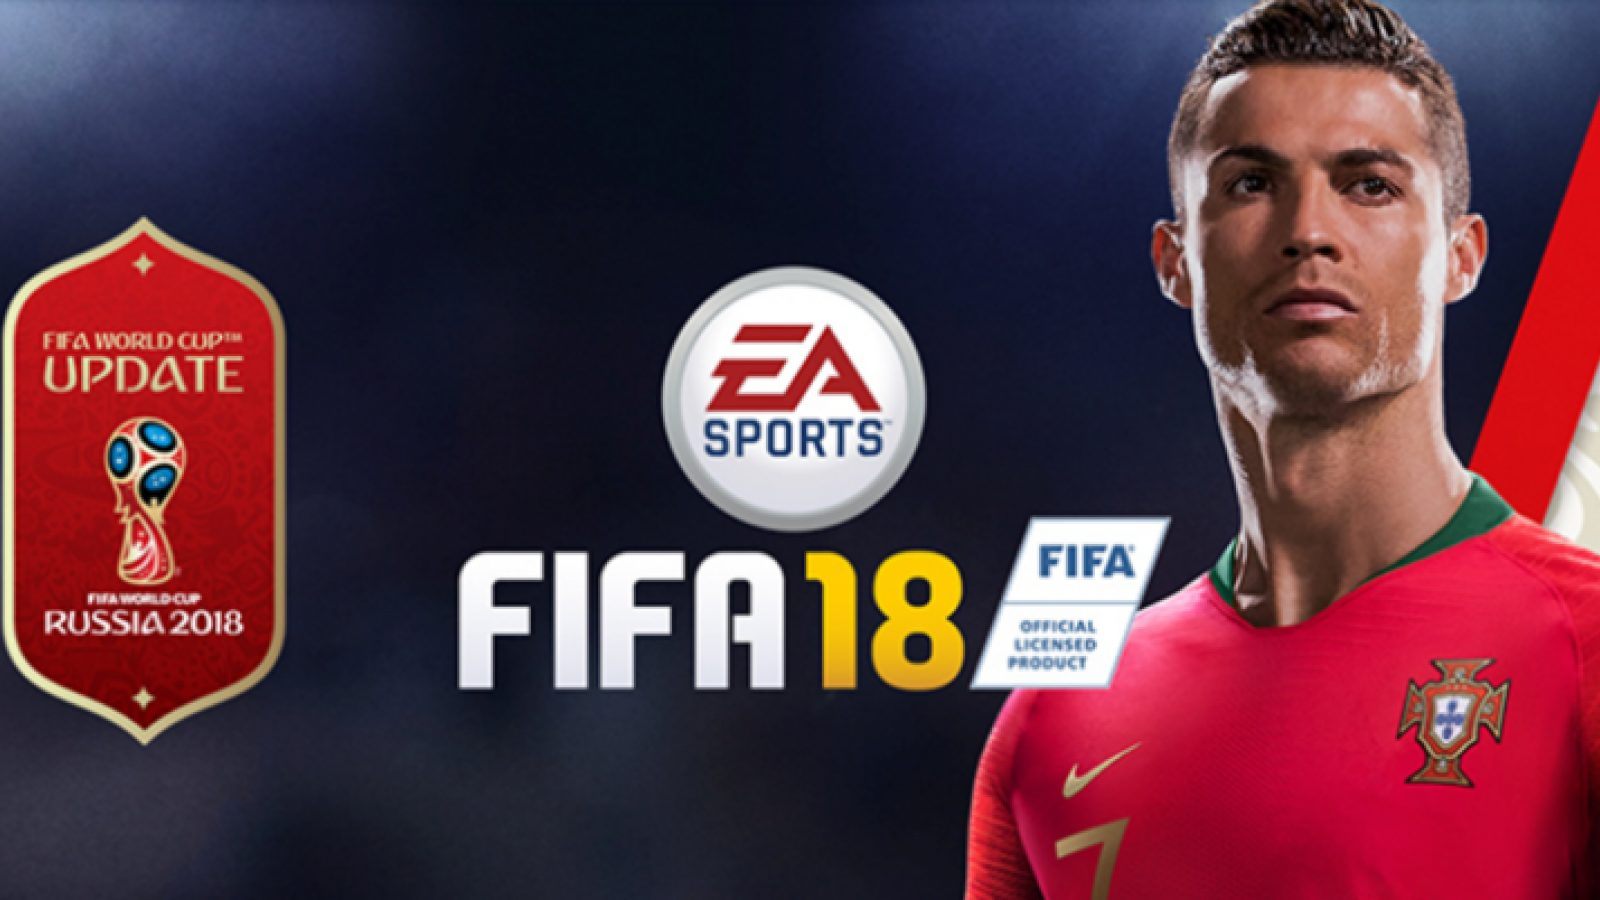 FROM HRCHEATS.COM FIFA SOCCER FIFA WORLD CUP | GET Fifa Points and Fifa Coins FOR UNLIMITED RESOURCES